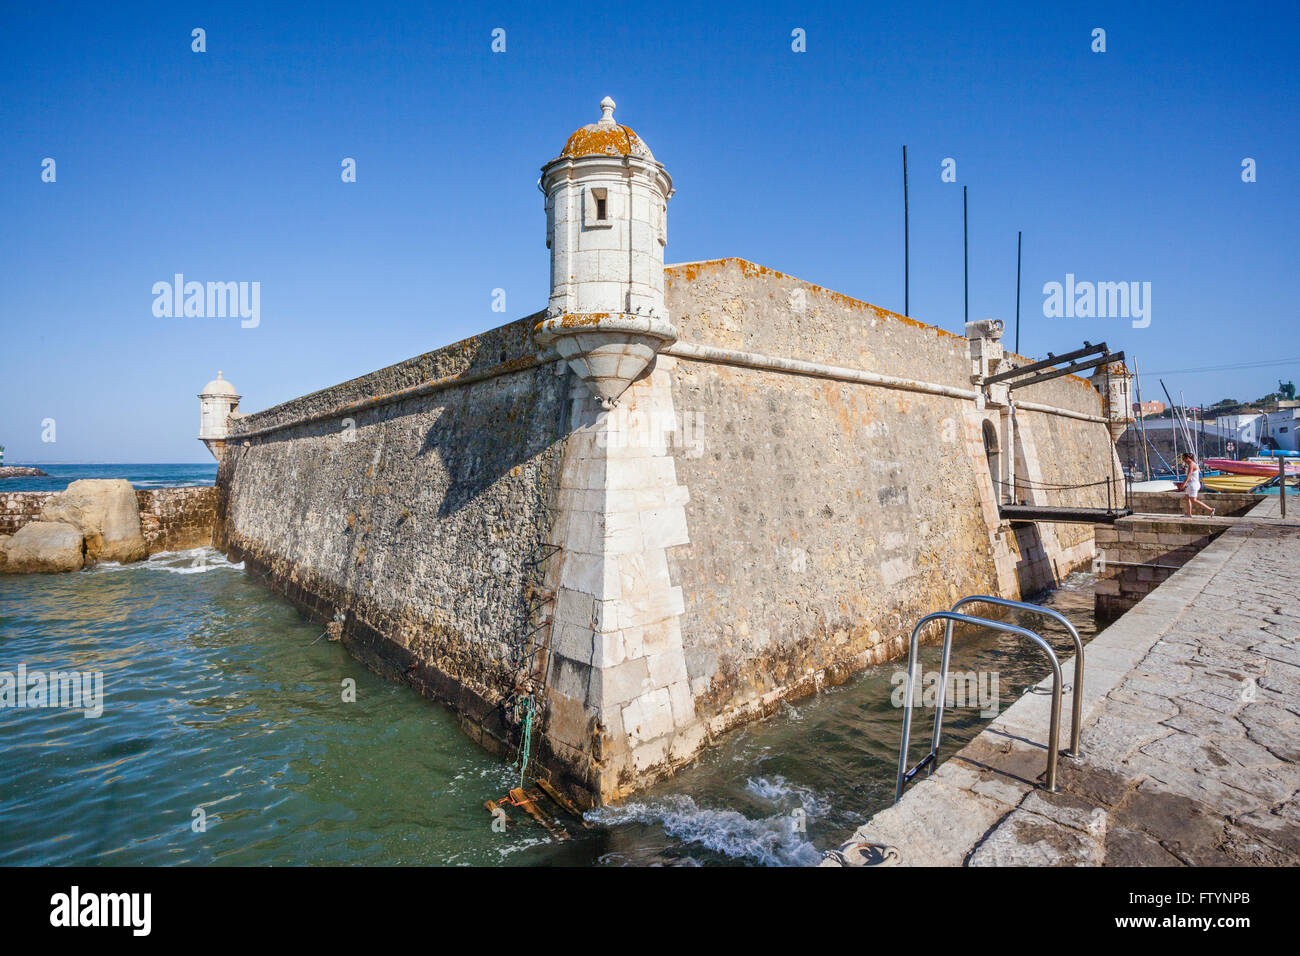 Portugal, Algarve, Lagos, view of Forte de Ponta da Bandeira at the harbour entrance, built in the 17th century - Stock Image